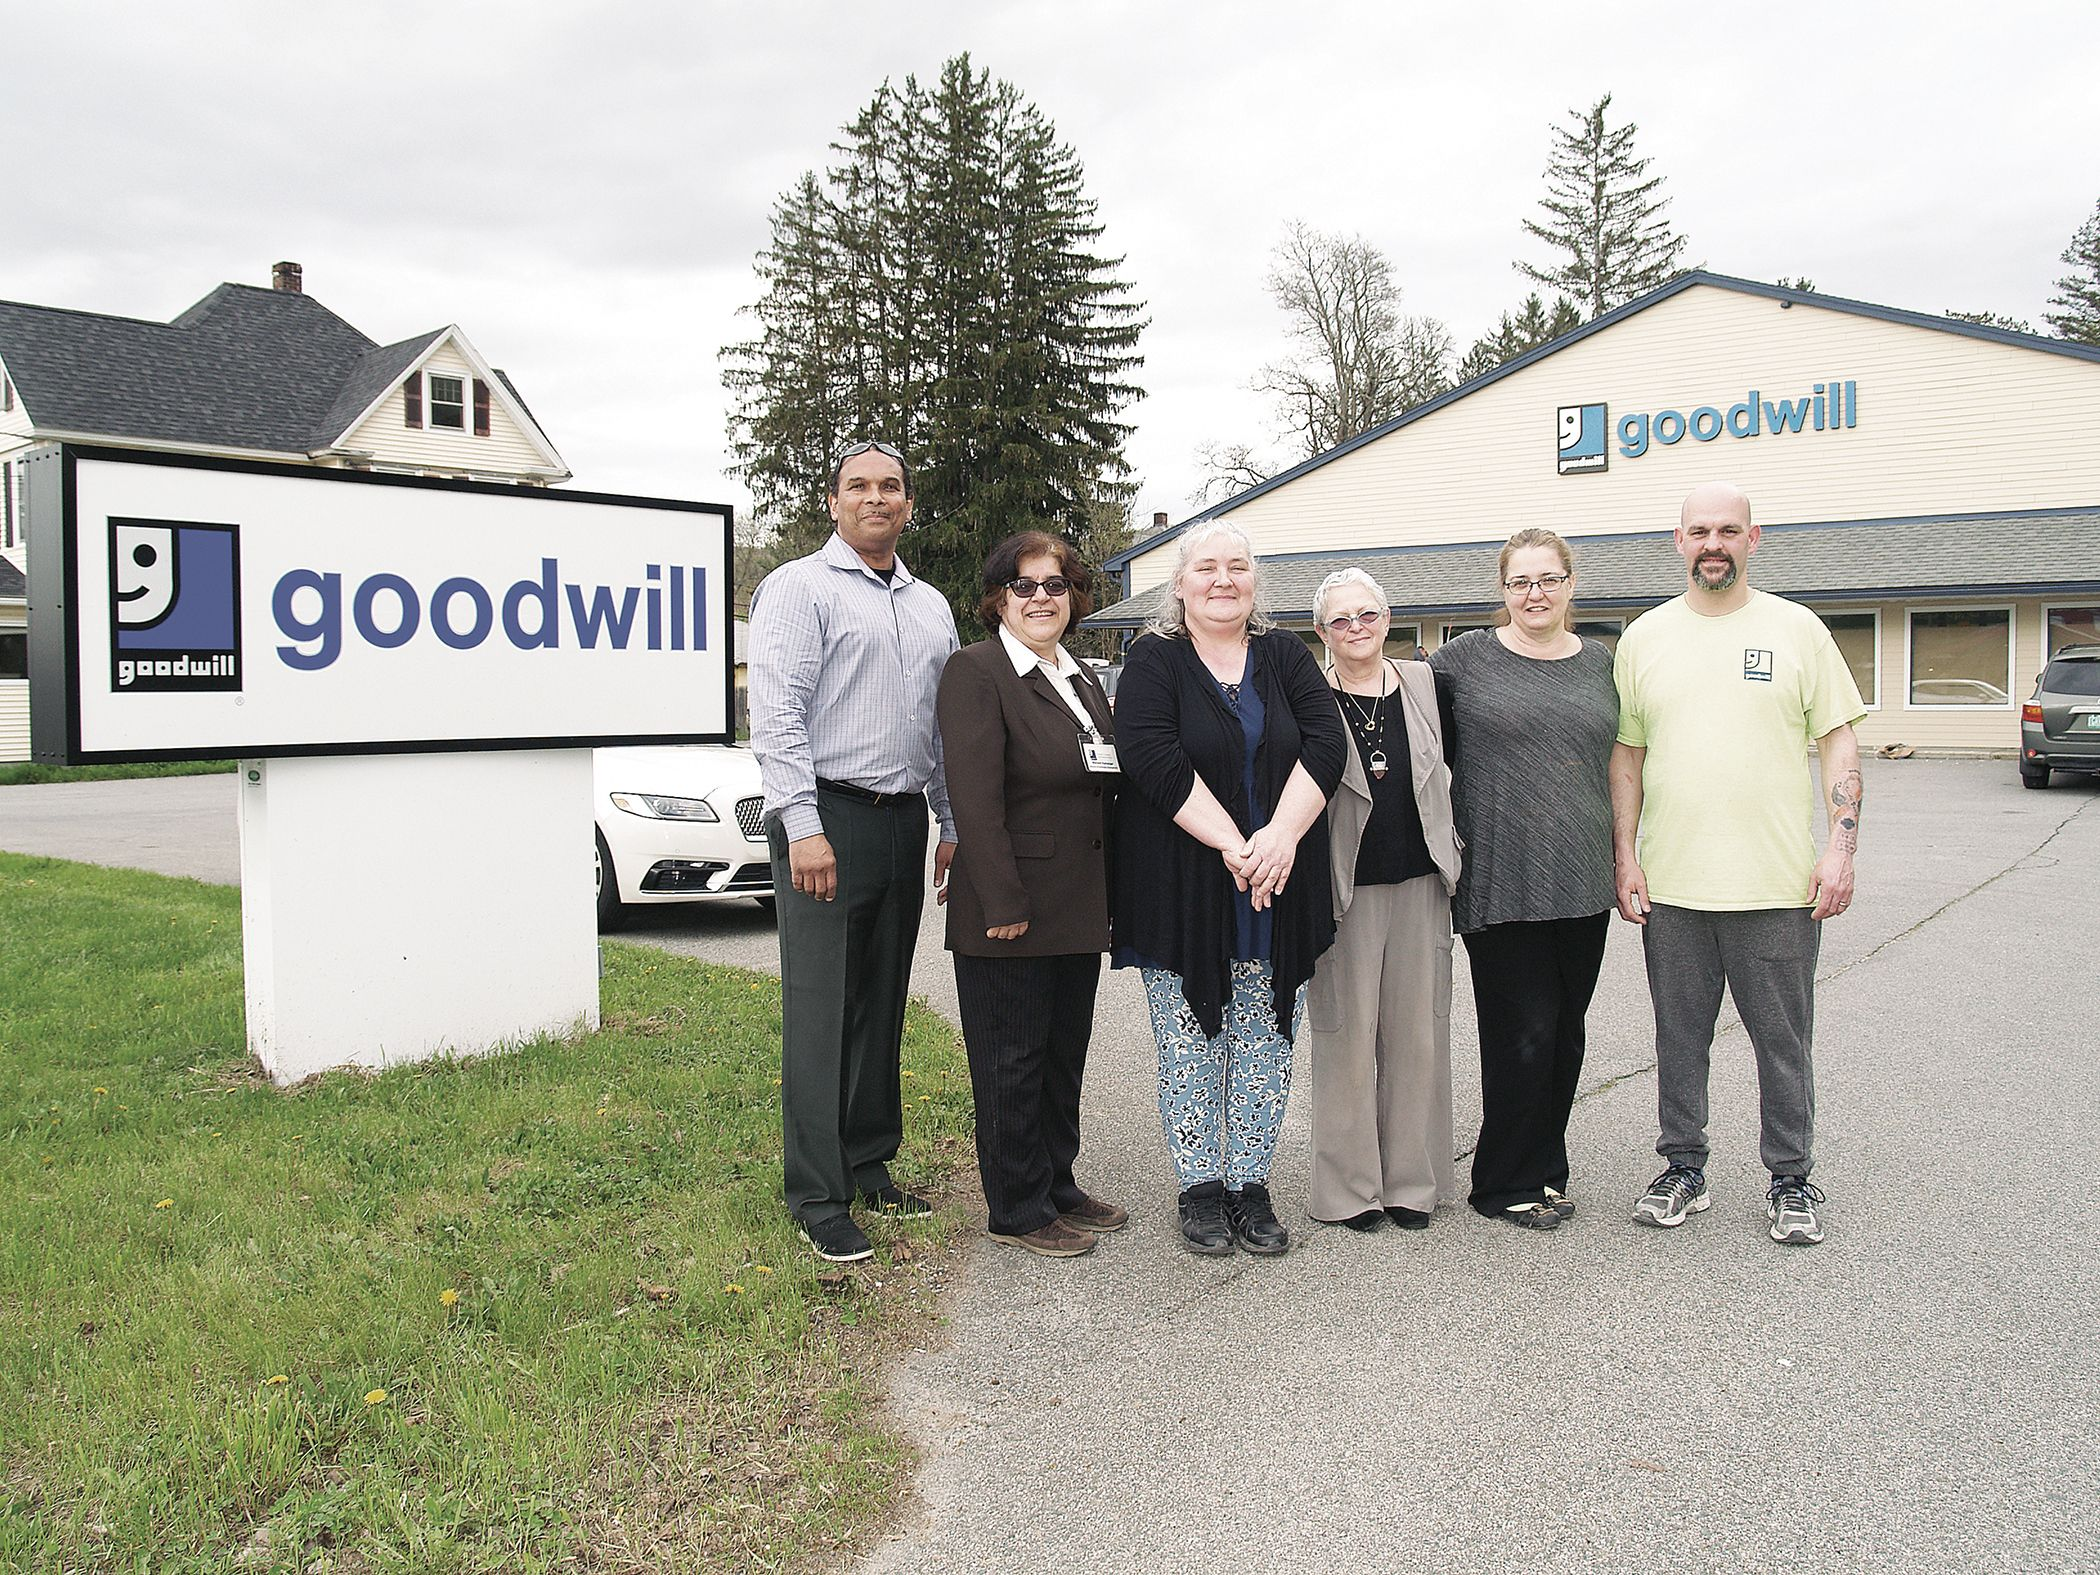 Bigger Presence in Great Barrington for Goodwill